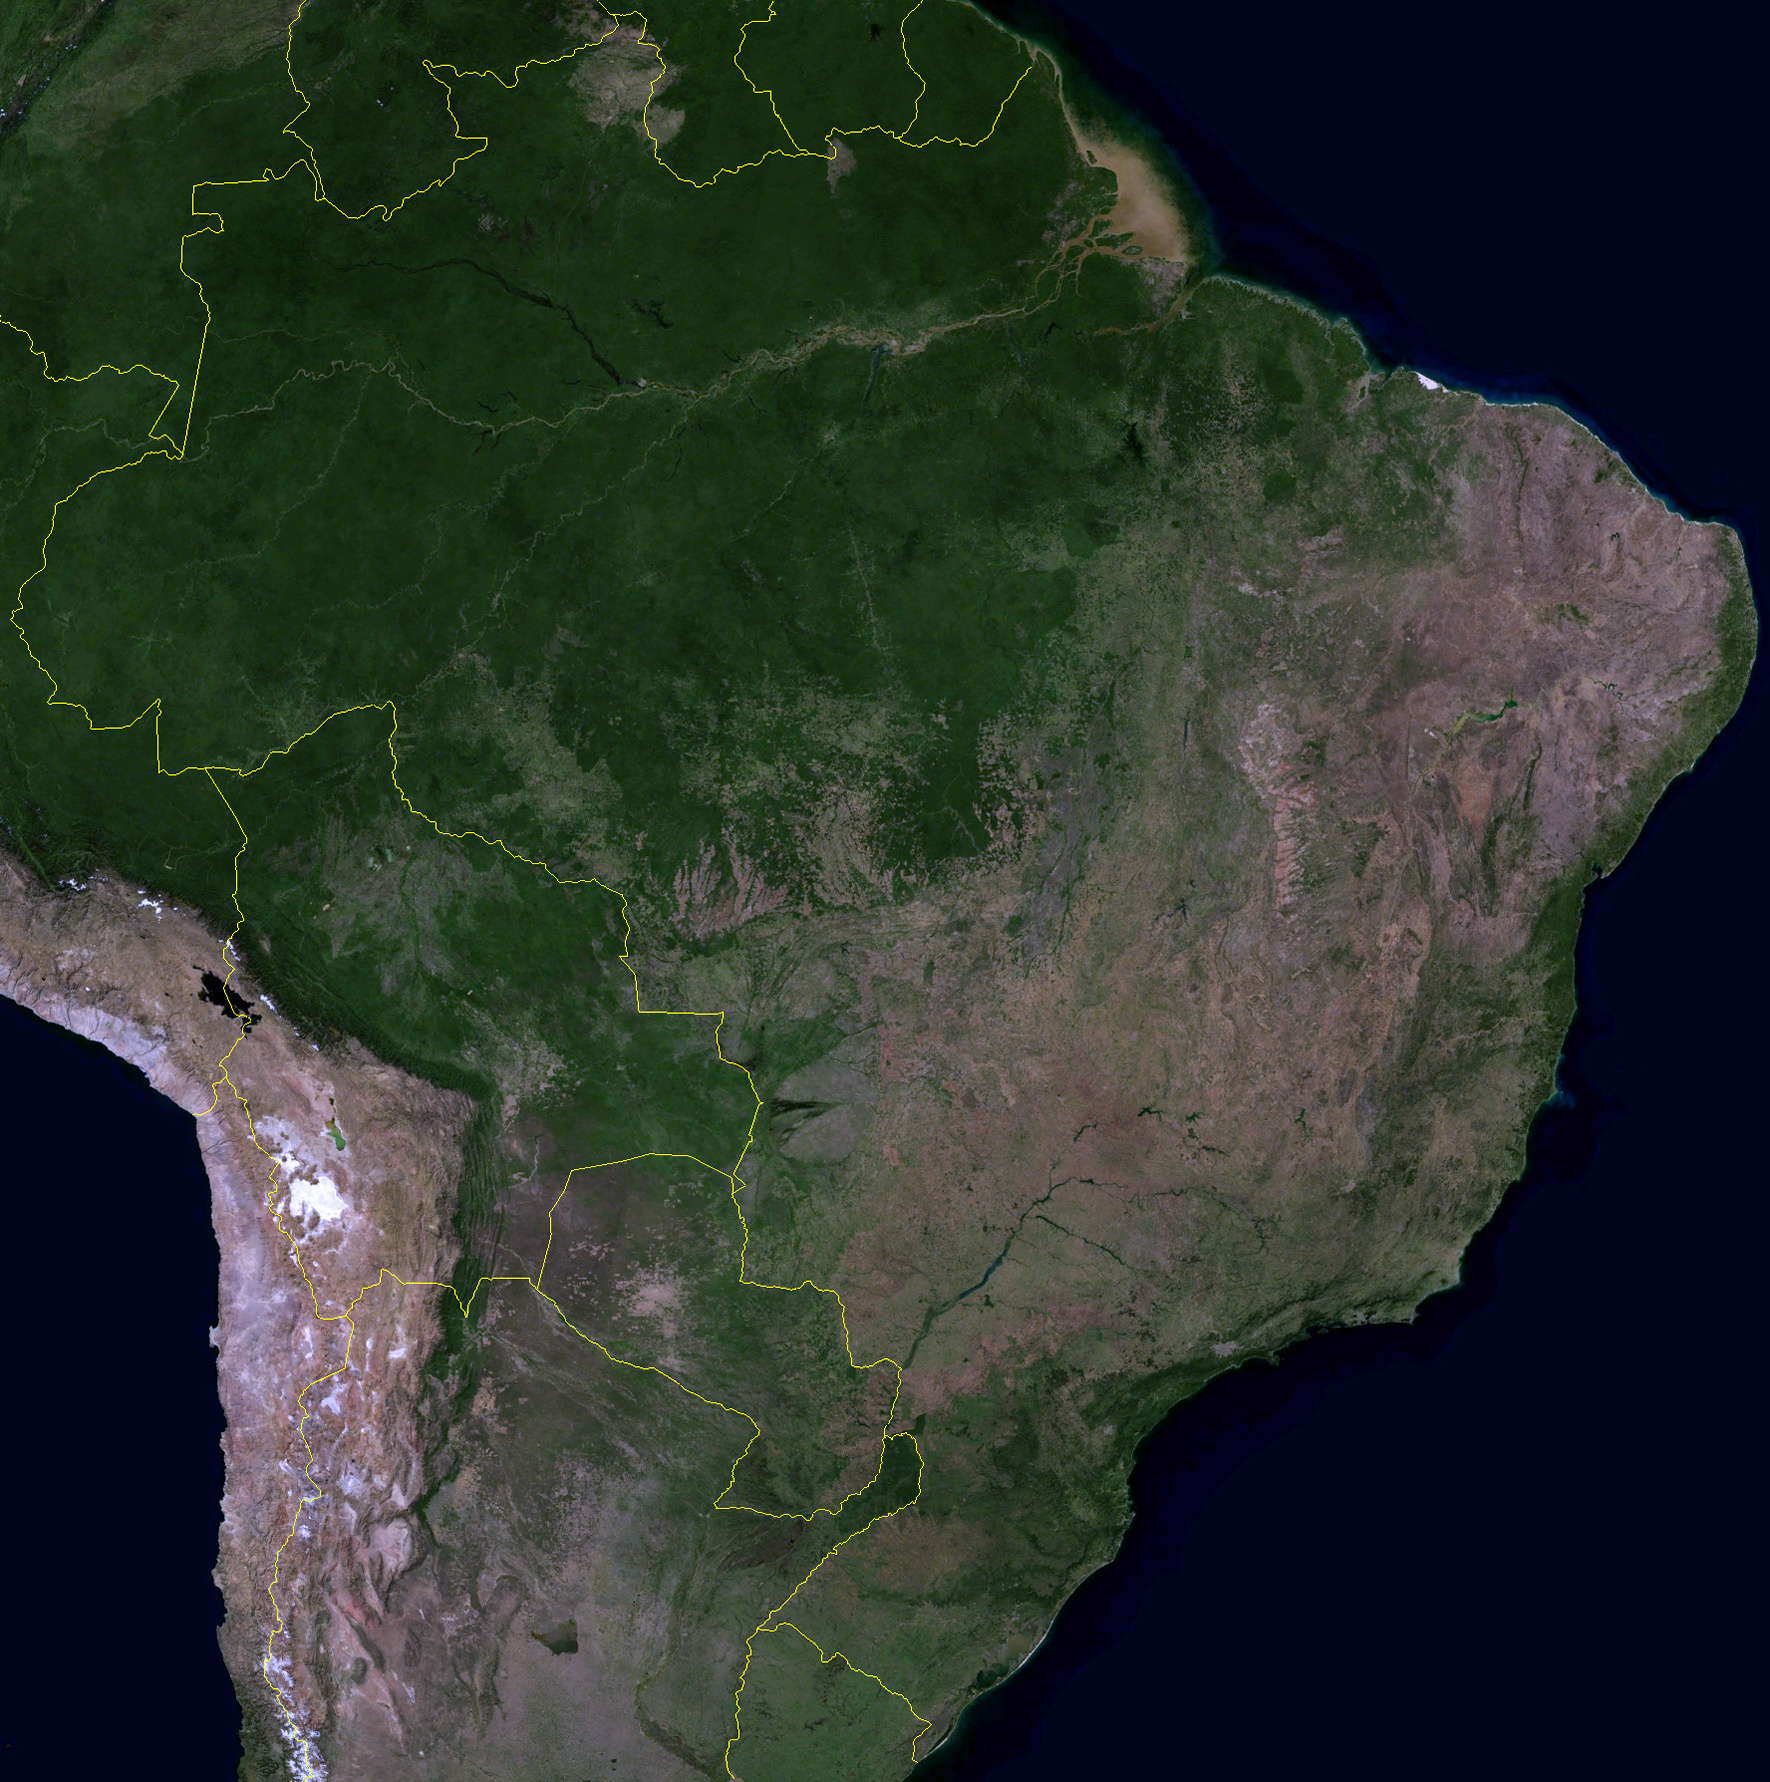 Detailed satellite map of zil | zil | South America ... on hd map of south america, precipitation of south america, labeled map of south america, physical features of south america, statistics of south america, google maps south america, physical map of south america, thematic map of south america, large map of south america, satellite maps of homes, north america, map of africa and south america, satellite maps of usa, complete map of south america, blank outline map of south america, a blank map of south america, full map of south america, current map of south america, google earth south america, topographic map of south america,